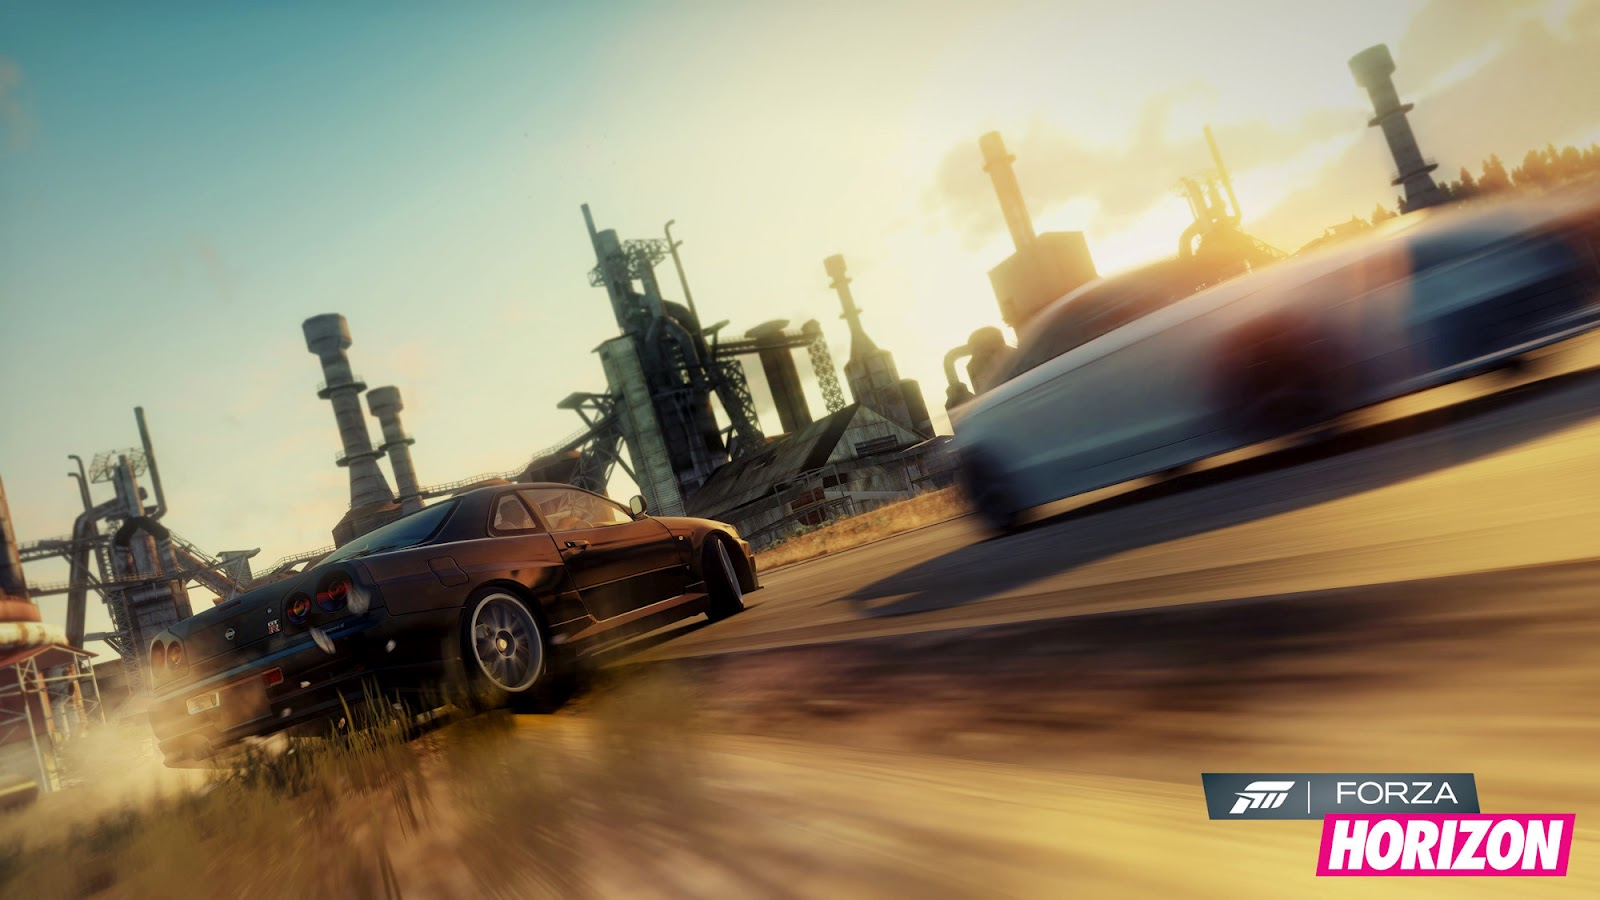 Forza Horizon HD & Widescreen Wallpaper 0.465818528644575